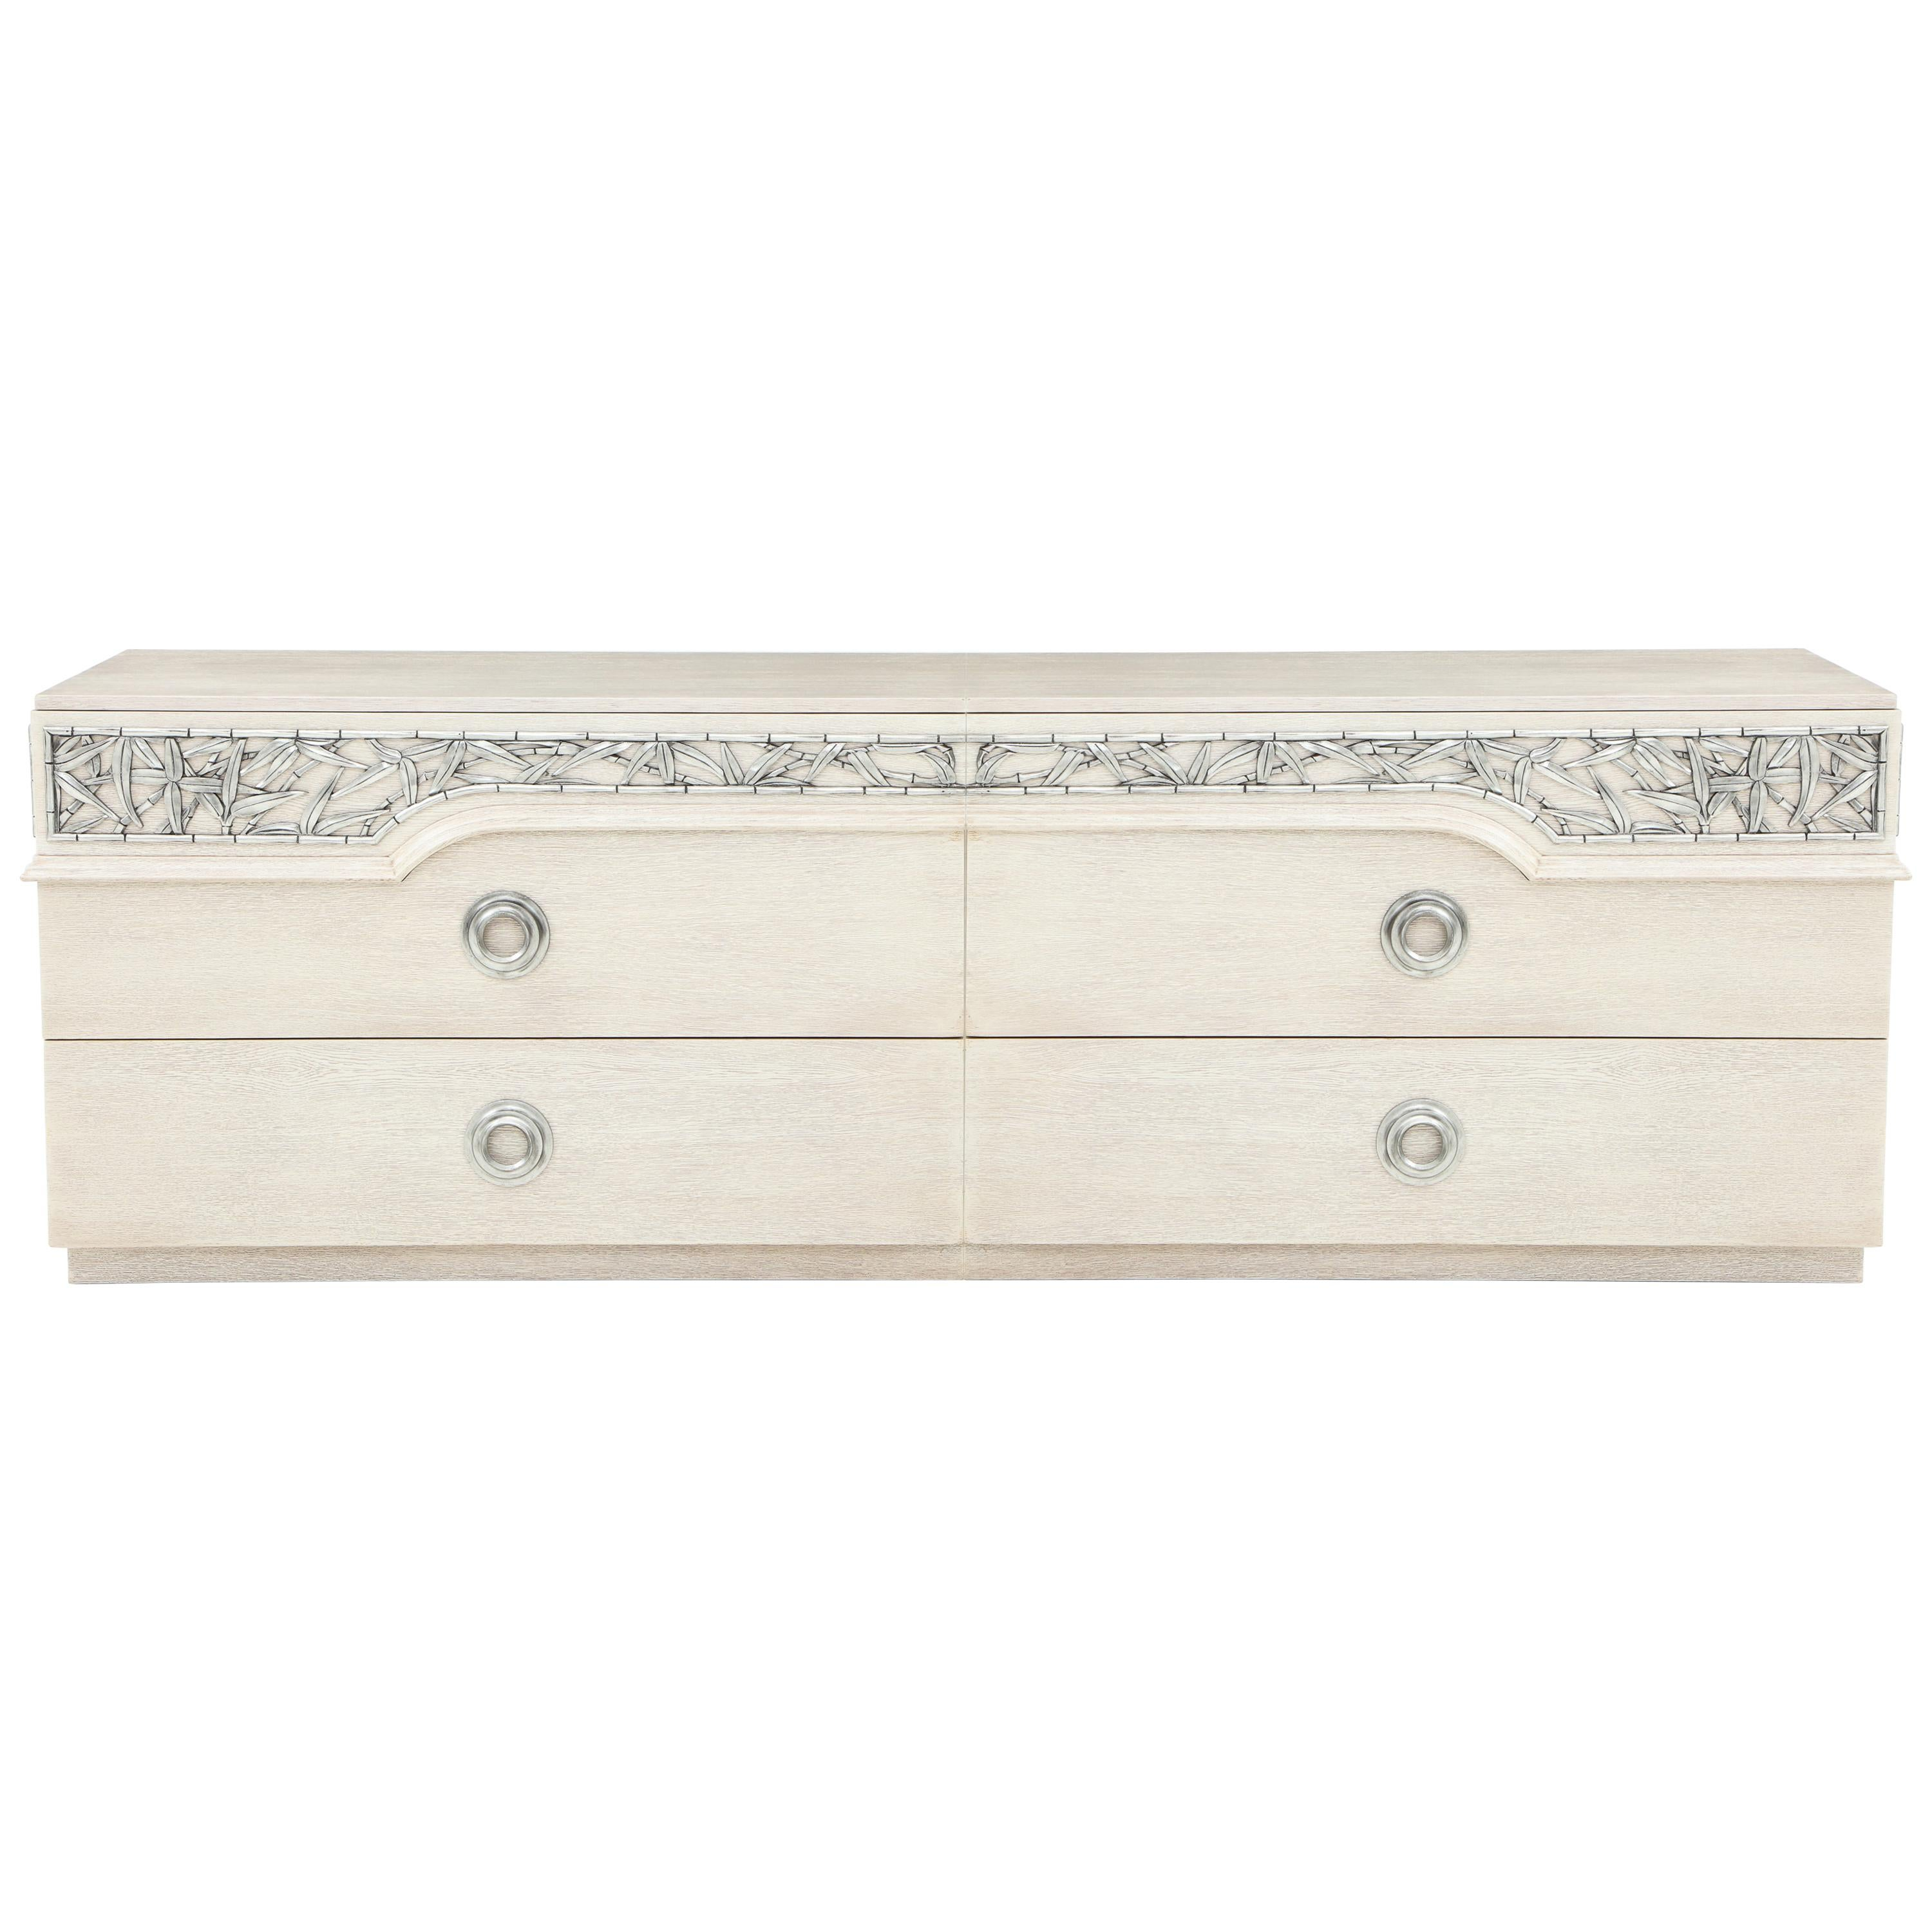 James Mont Chinoiserie Bamboo Dressers